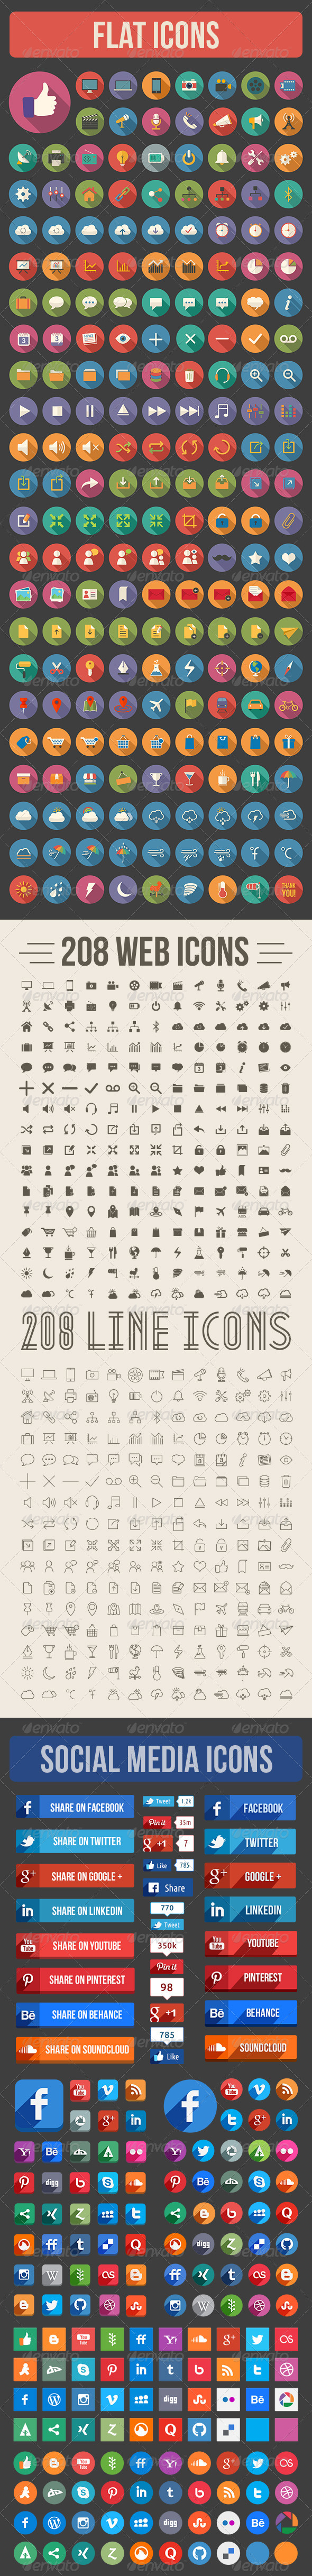 GraphicRiver 800 Flat Icons 6660683